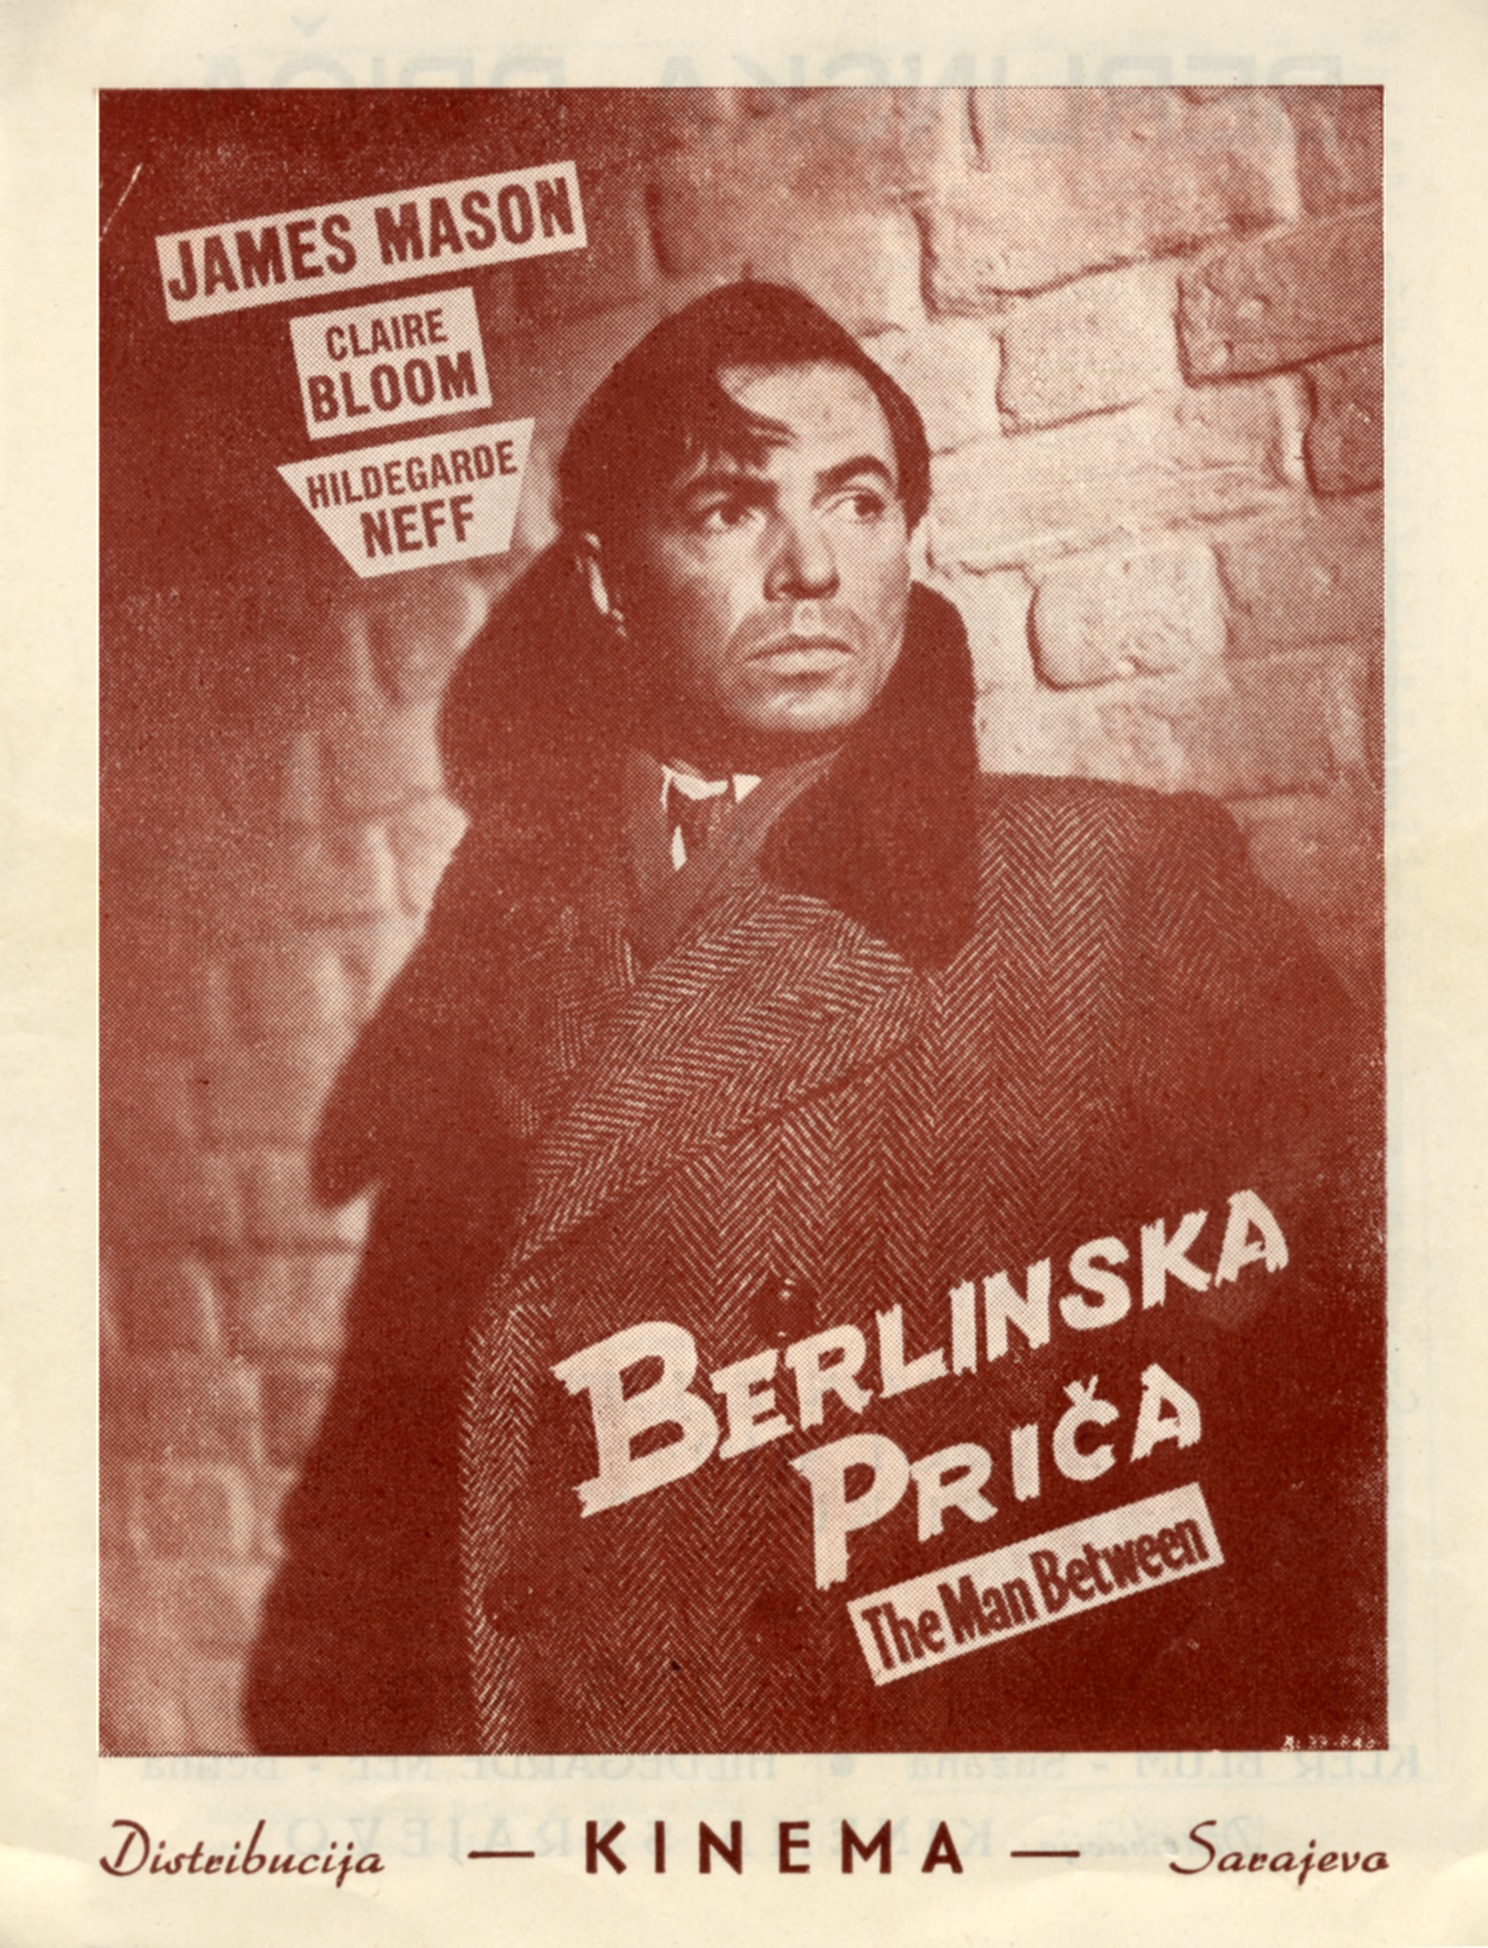 Advertisement for the feature film 'The Man Between', © Jugoslovenska kinoteka, Belgrade